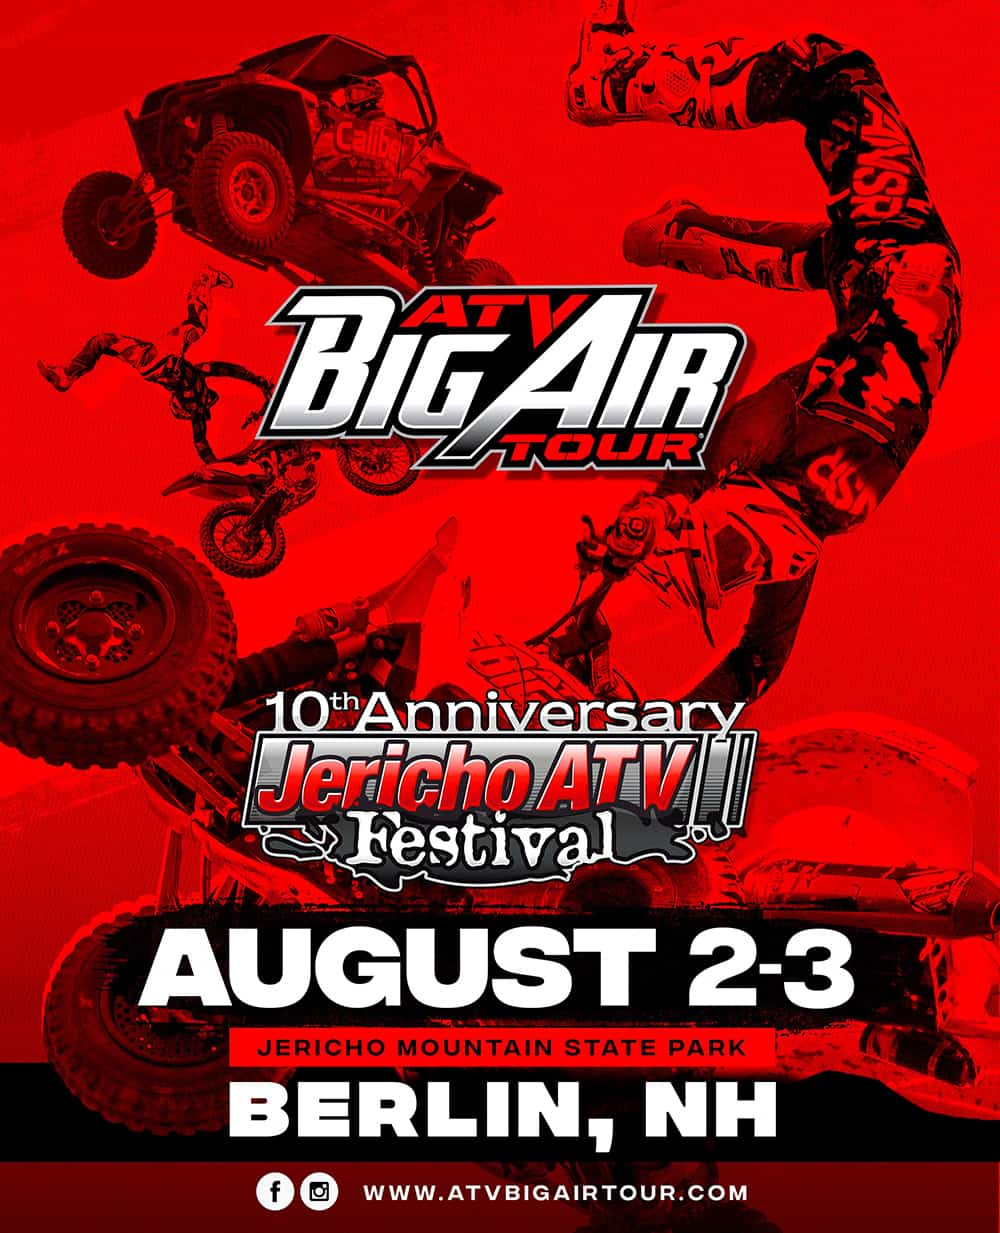 The ATV Big Air Tour comes to the Jericho ATV Festival in Berlin, NH!